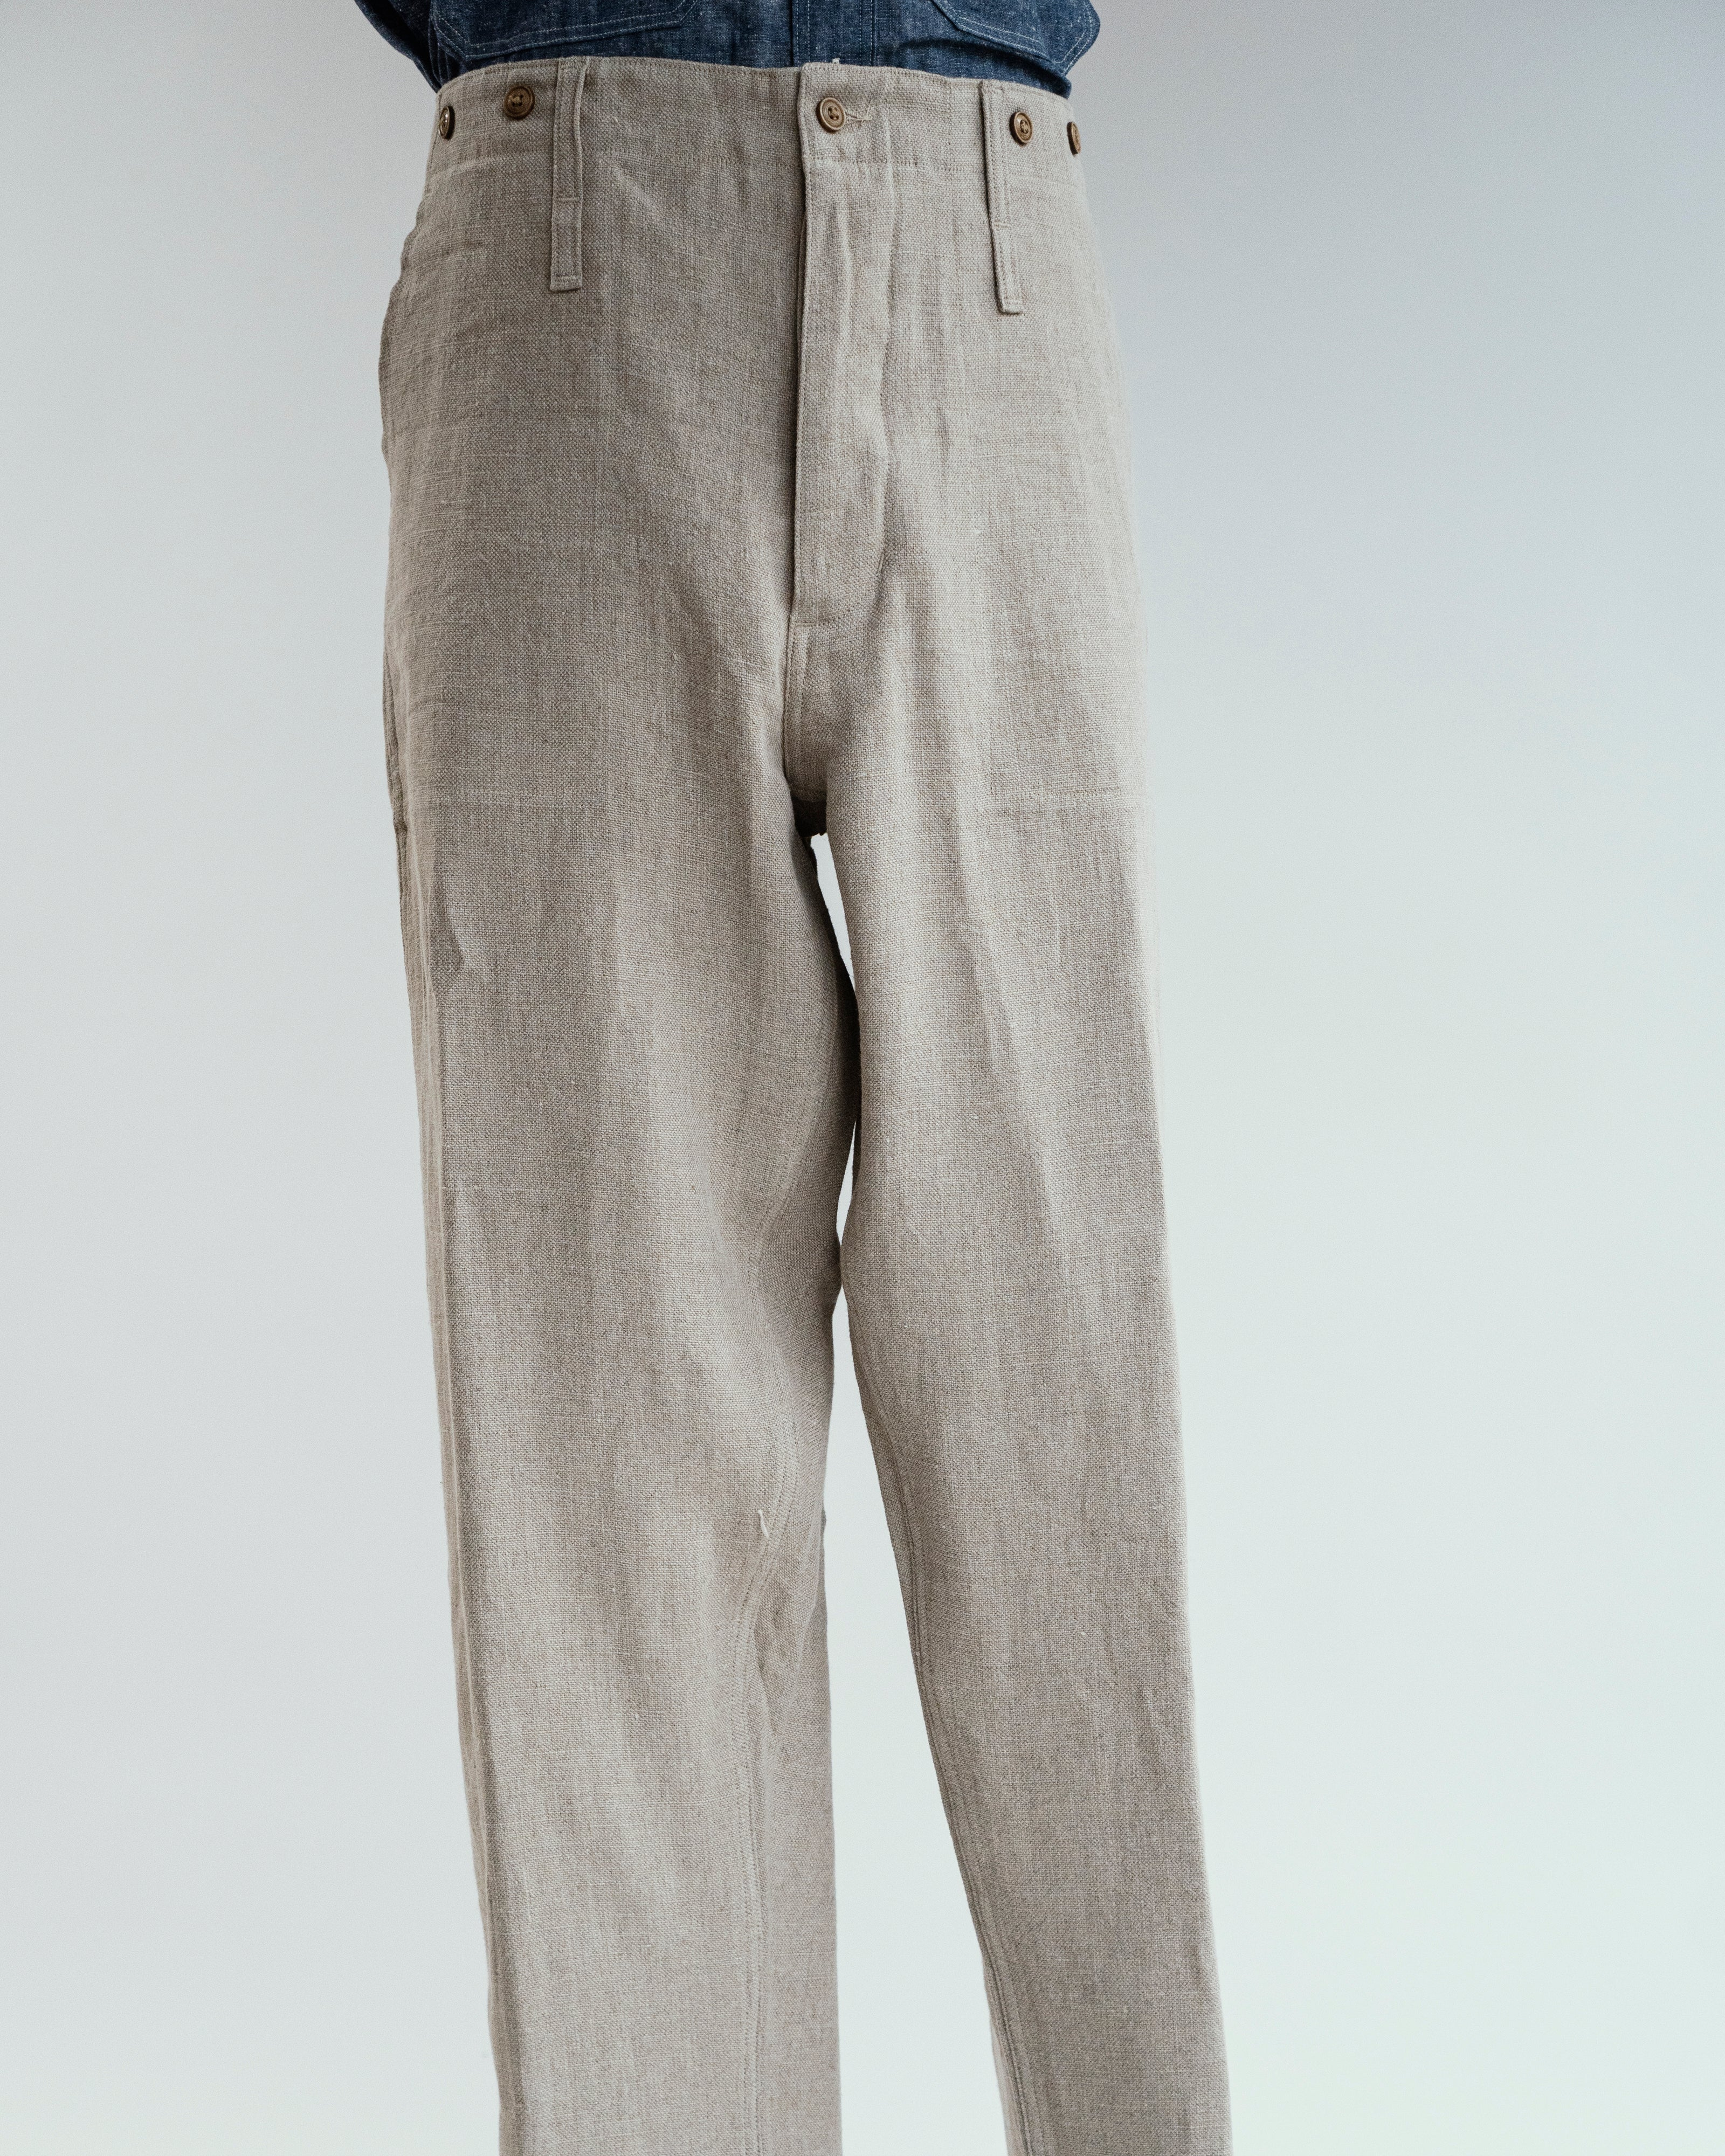 French Linen Work Pant, Nigel Cabourn - The Signet Store